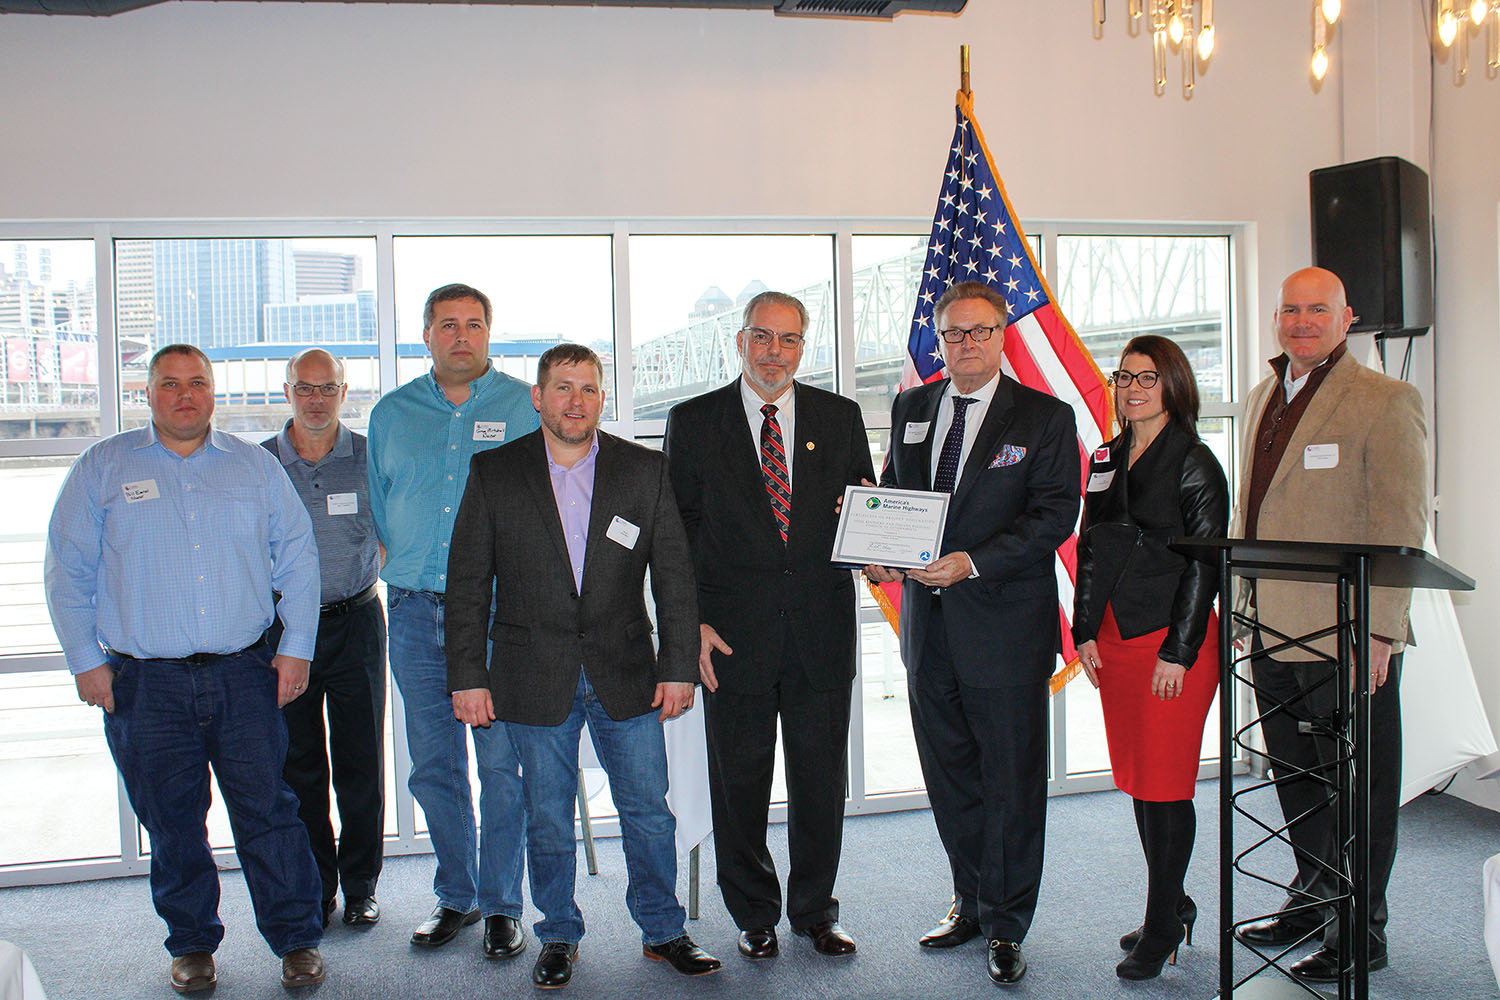 Tim Pickering (third from right) of the U.S. Maritime Administration presents a certificate designating a Nucor Steel's hauling of steel coils by barge from Gallatin, Ky., to customers via the Port of Louisville as a marine highway project. The Ohio, Kentucky and Indiana Regional Council of Governments was the project sponor. Partners included Nucor Steel, the Central Ohio River Business Association and several ports in Kentucky, Indiana and Ohio. (Photo by Shelley Byrne)